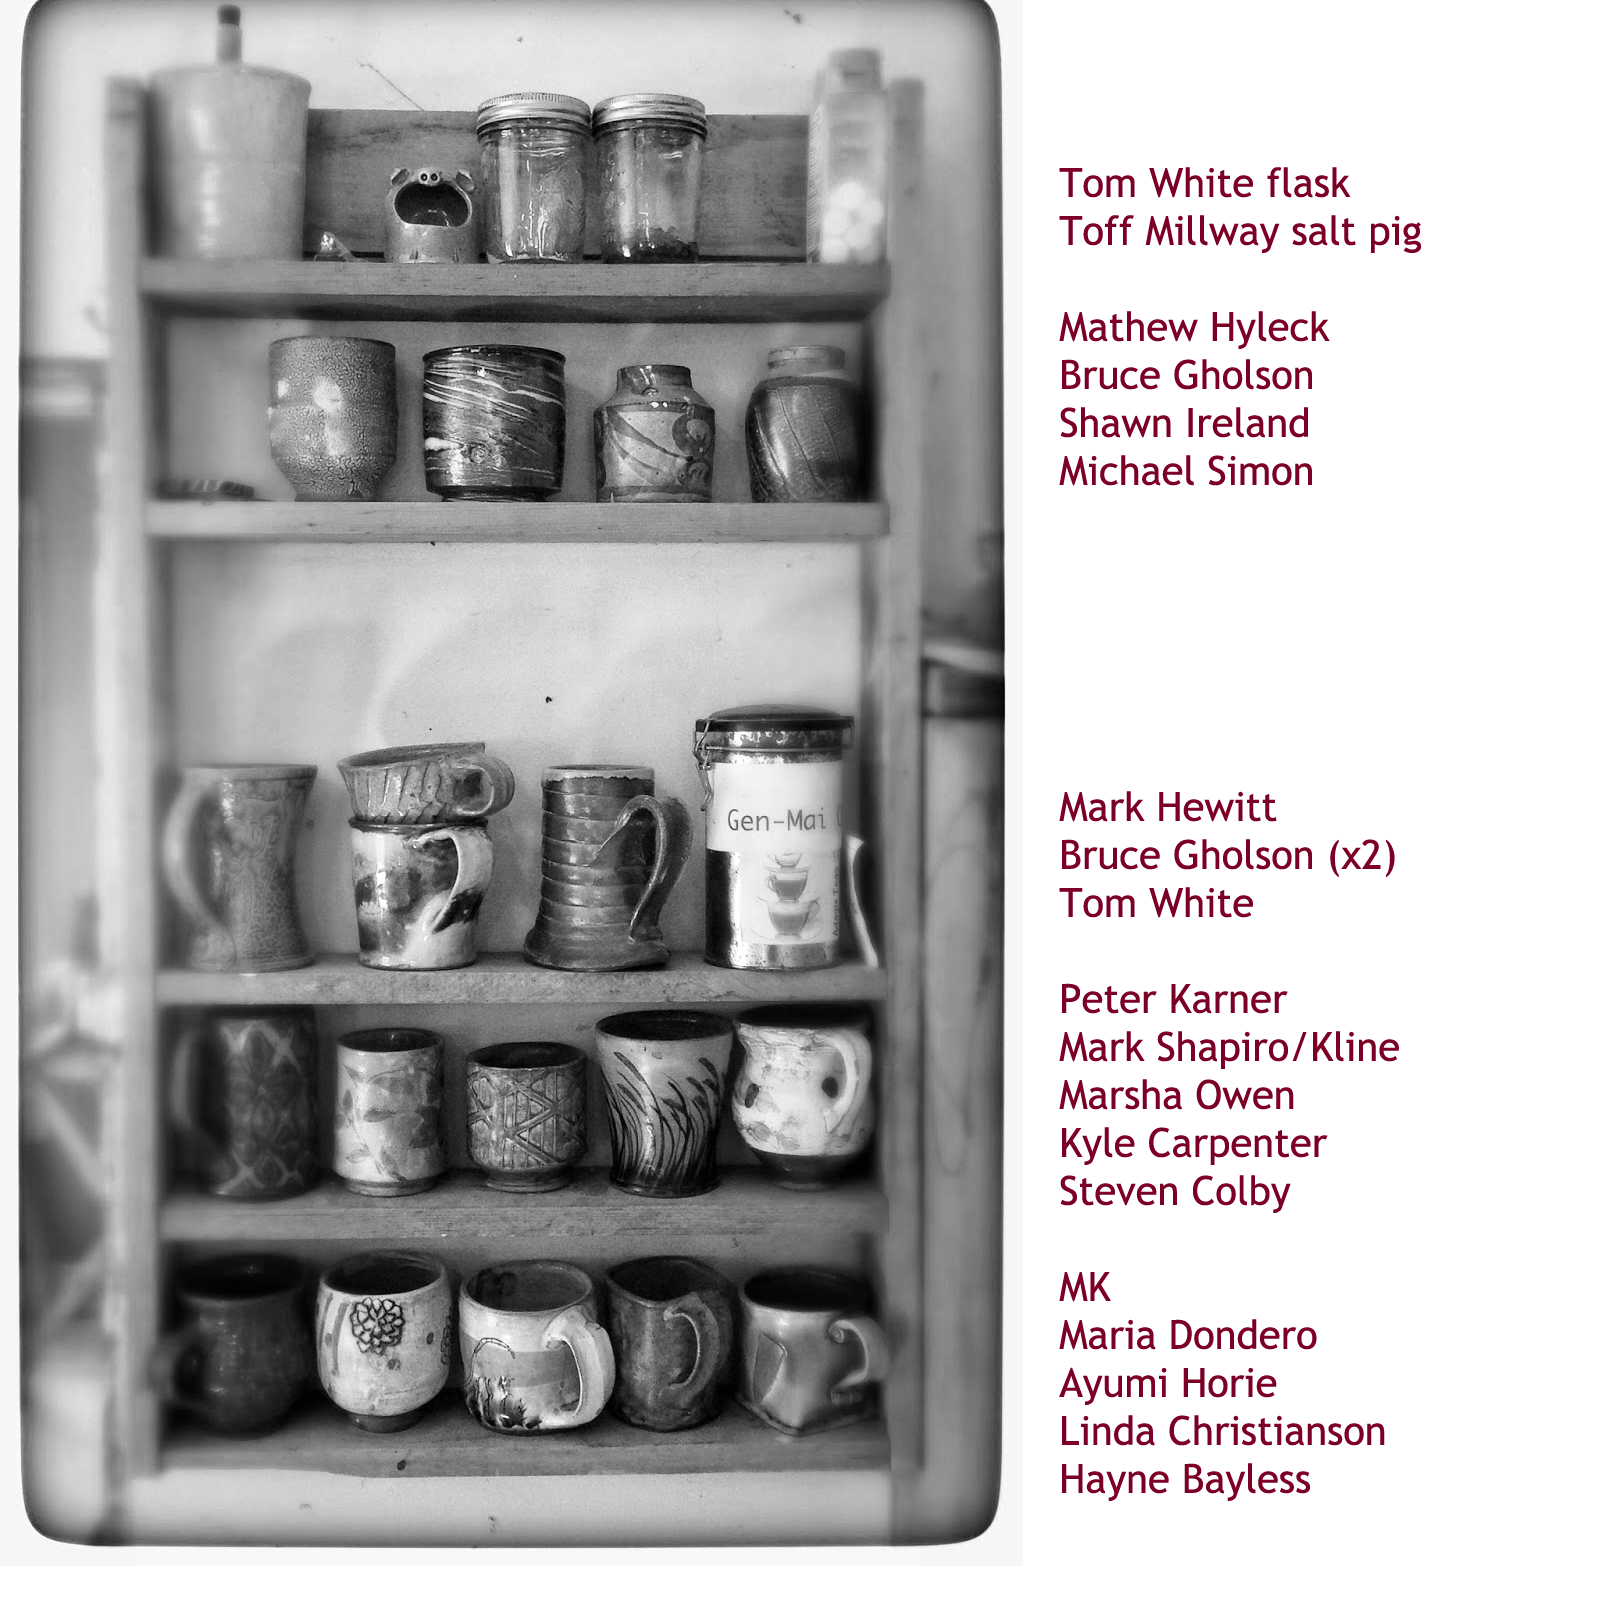 mug rack with pots from Tom White, Michael Simon, Kyle Carpenter, Shawn Ireland, Mark Hewitt, Bruce Gholson, Matt Hyleck, Maria Dondero, Ayumi Horie, Hayne Bayless